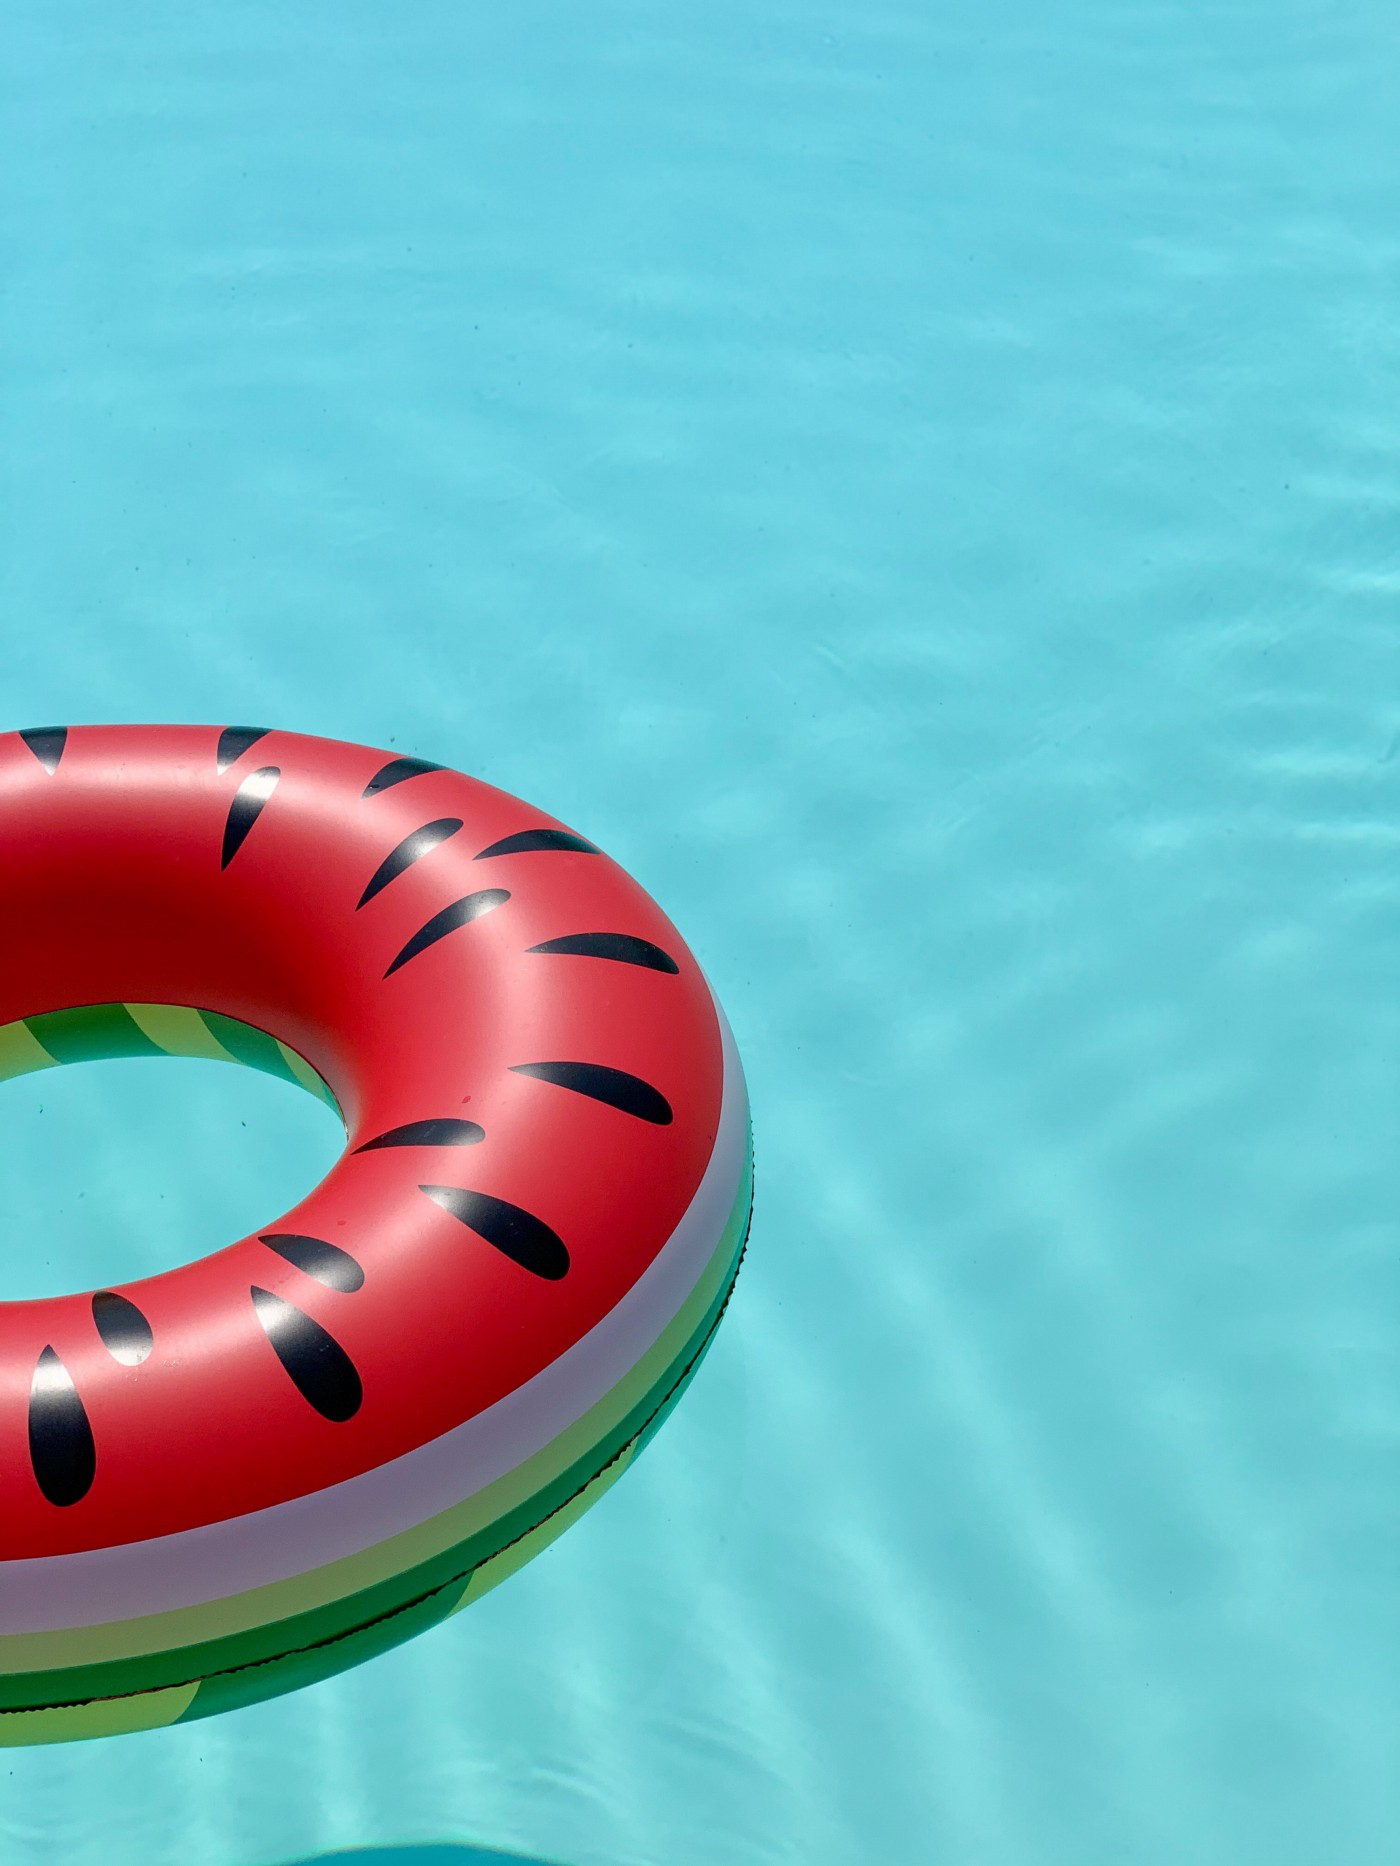 A runner ring on the surface of a swimming pool